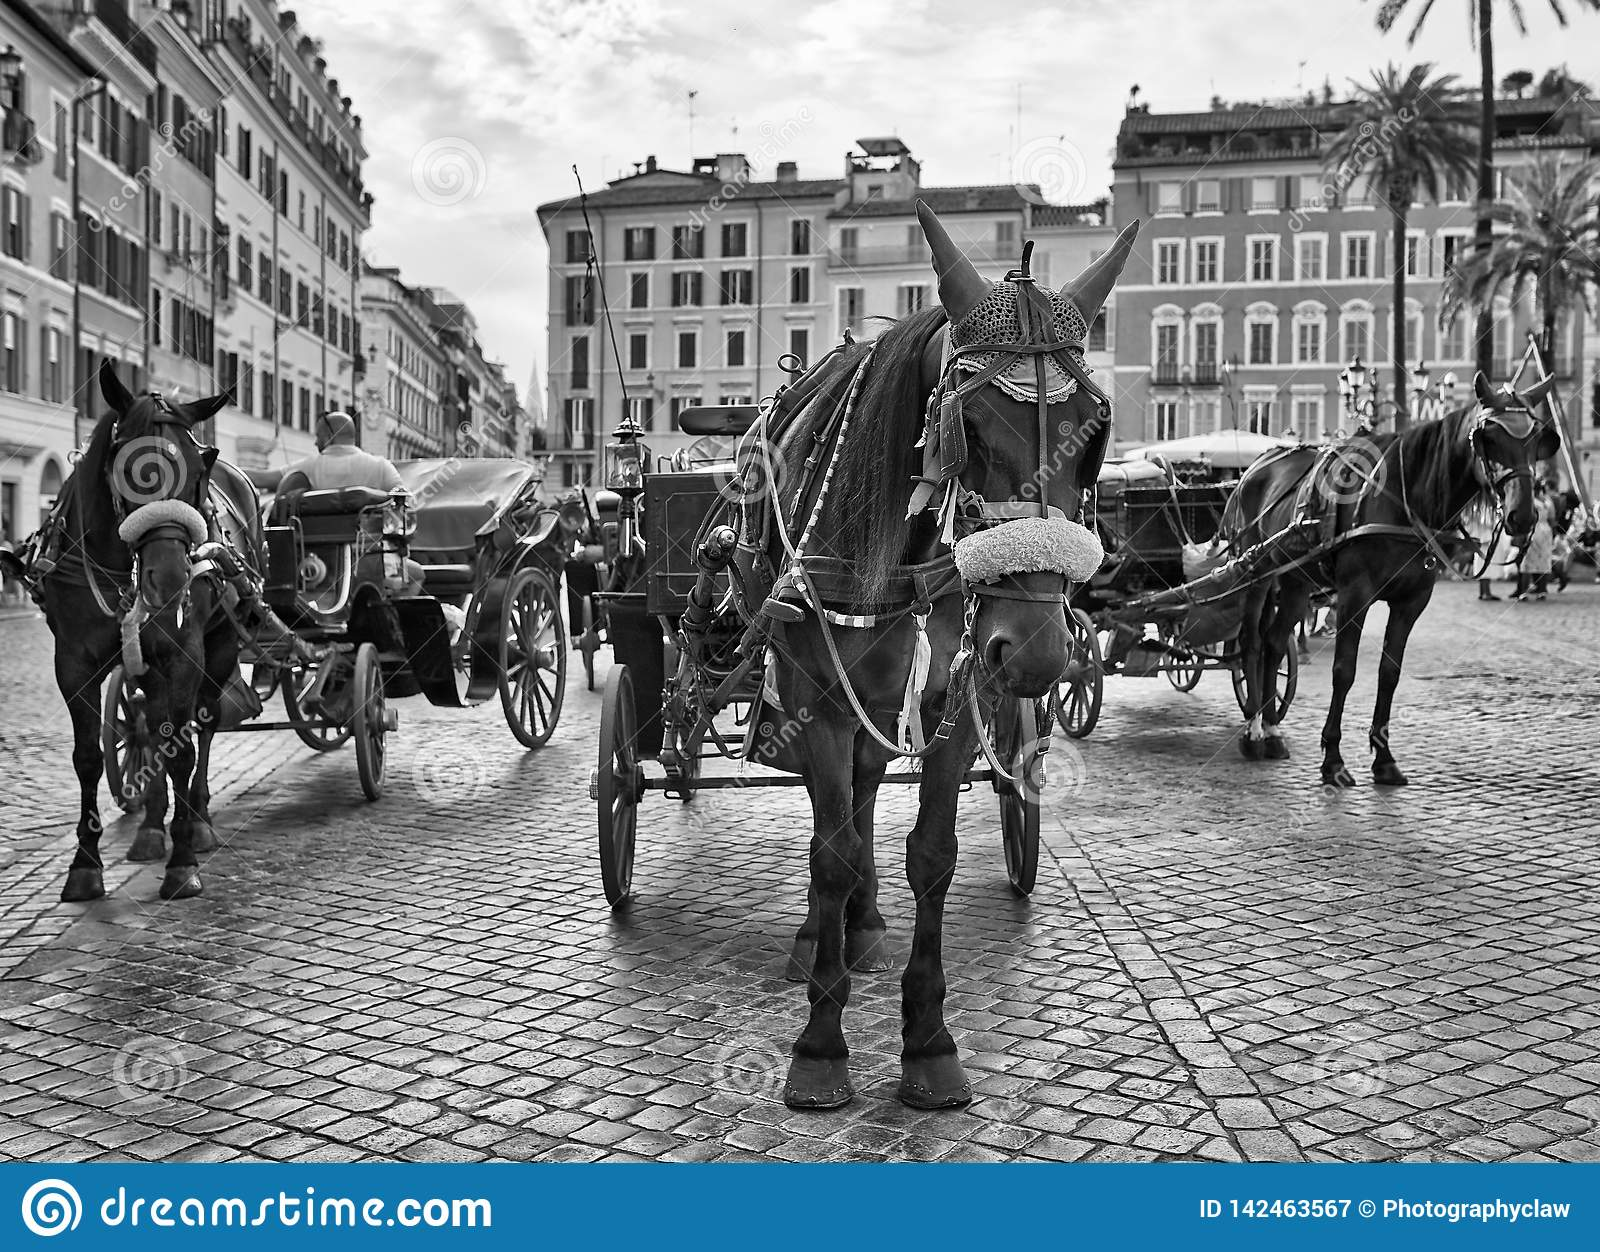 Spanish Steps Horse Carriage Black and White